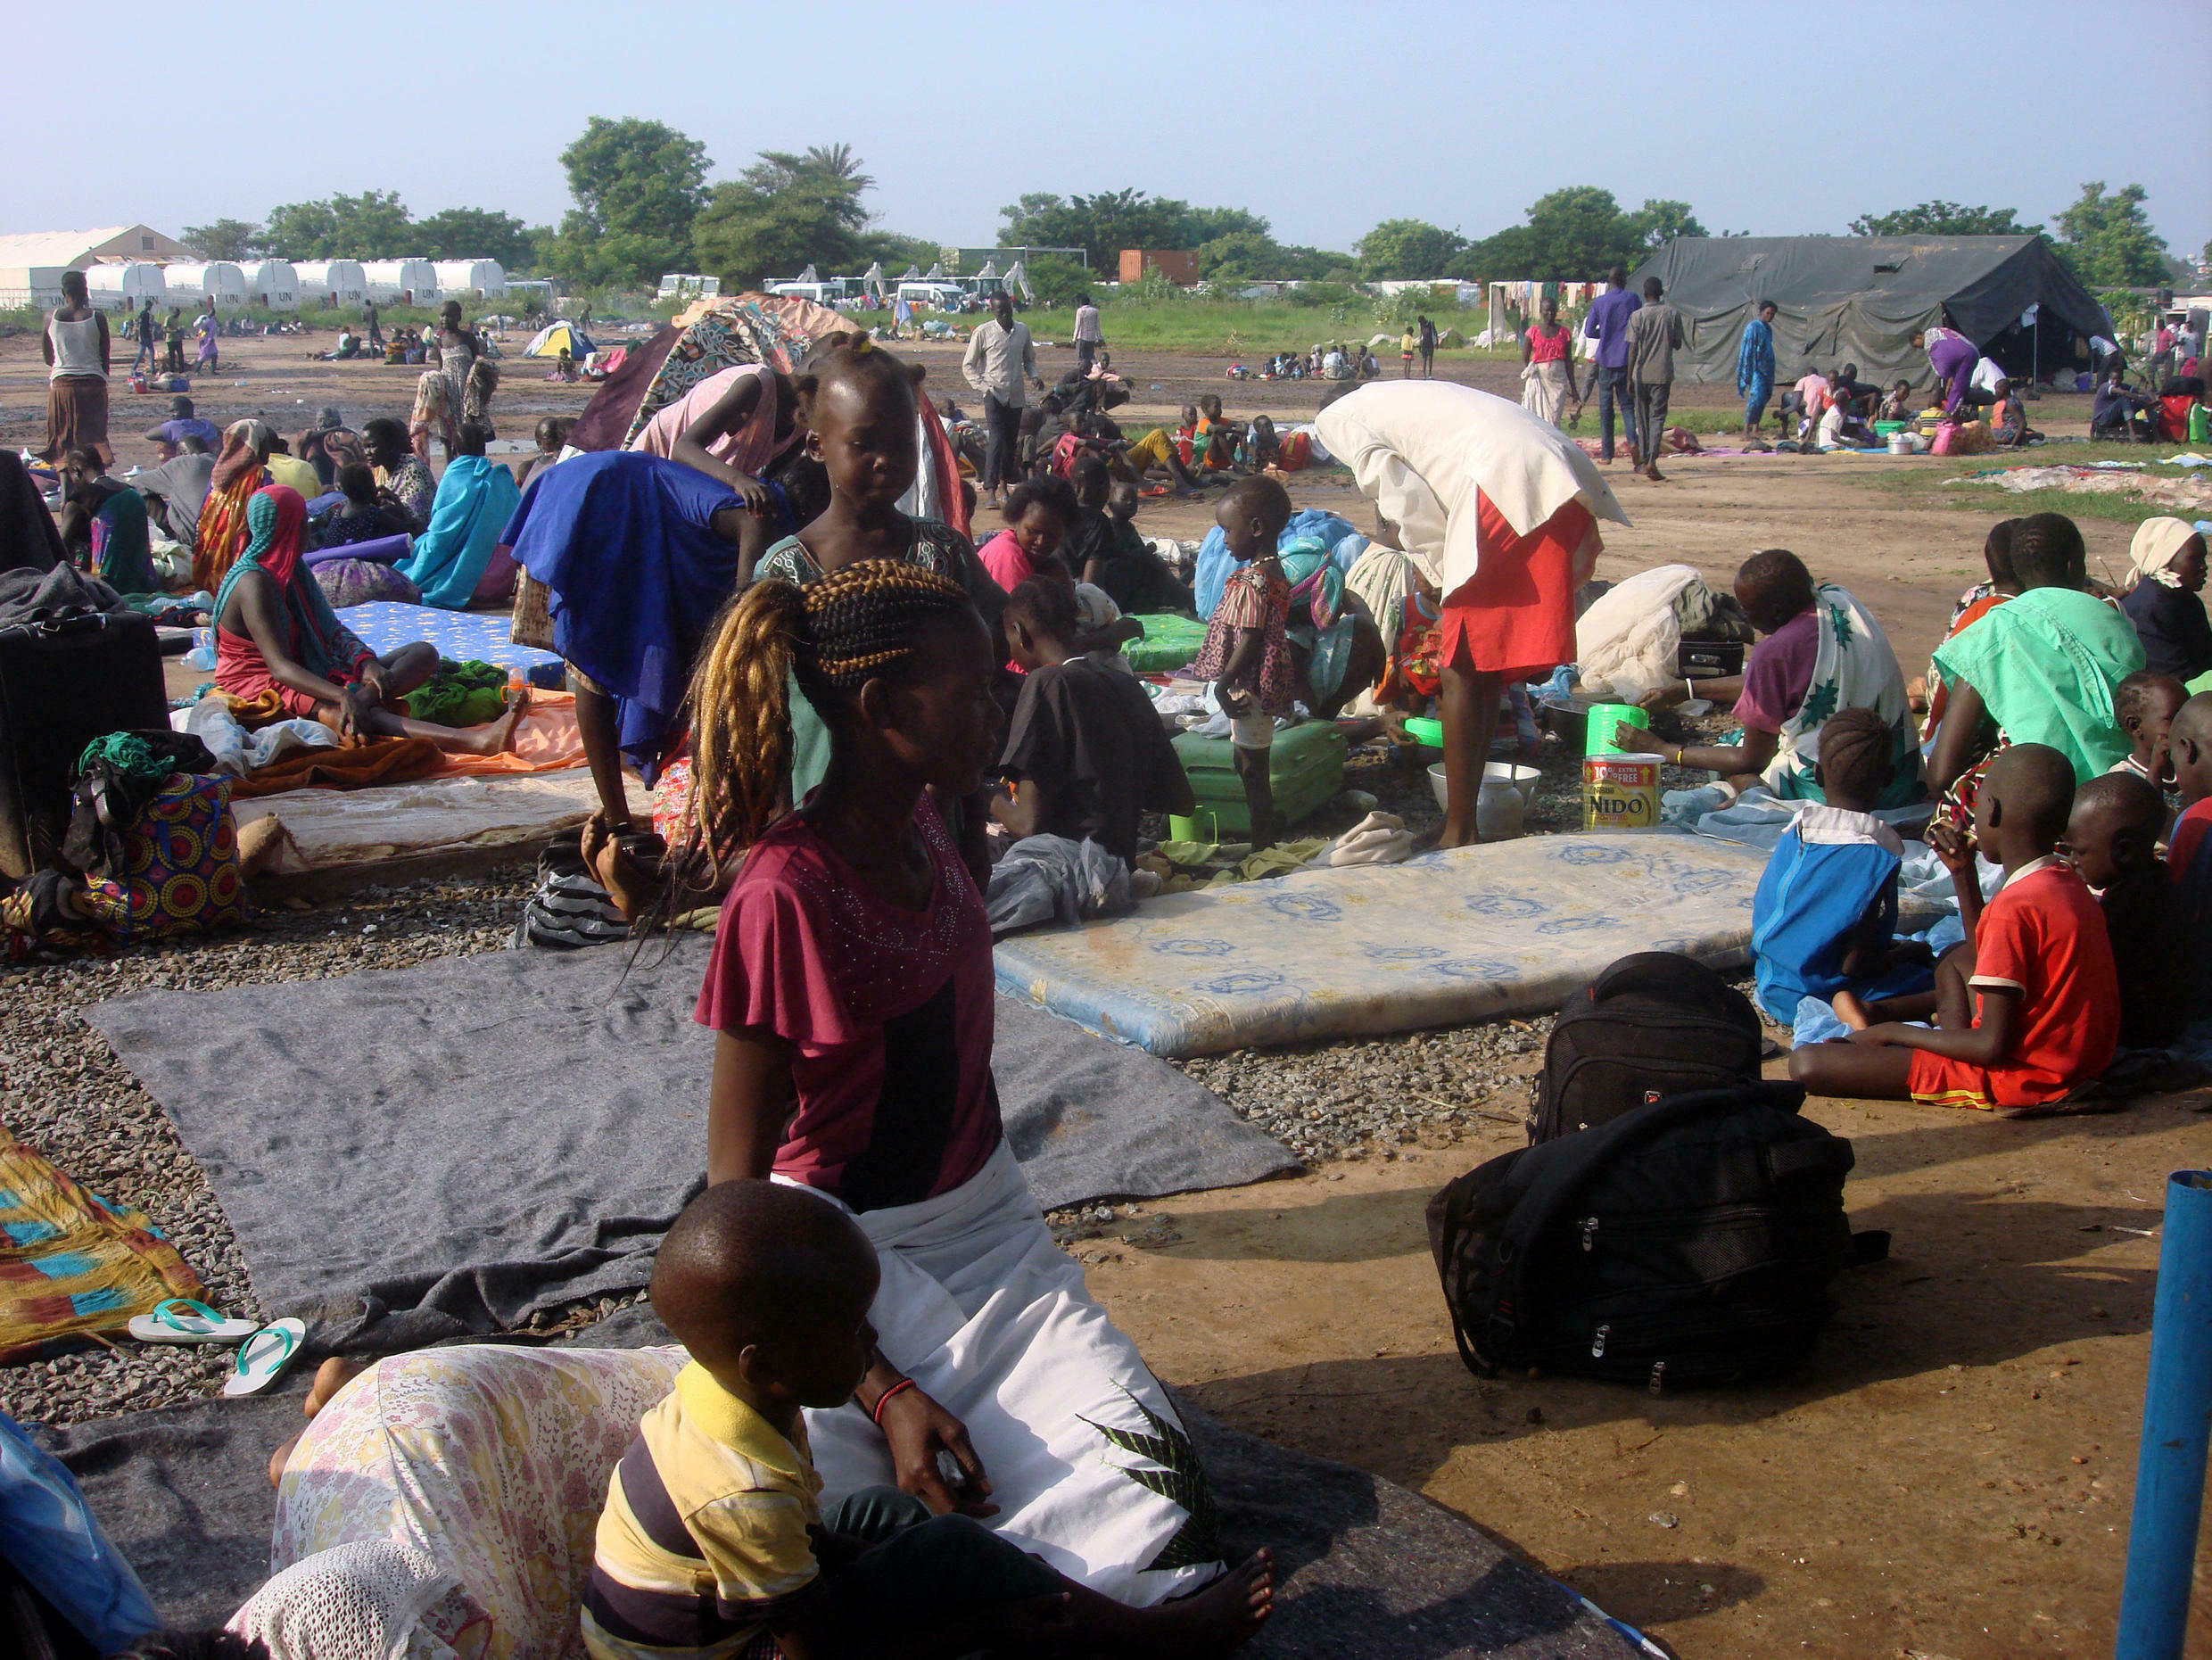 Displaced South Sudanese families are seen in a camp for internally displaced people in the United Nations Mission in South Sudan (UNMISS) compound in Tomping, Juba, South Sudan, July 11, 2016